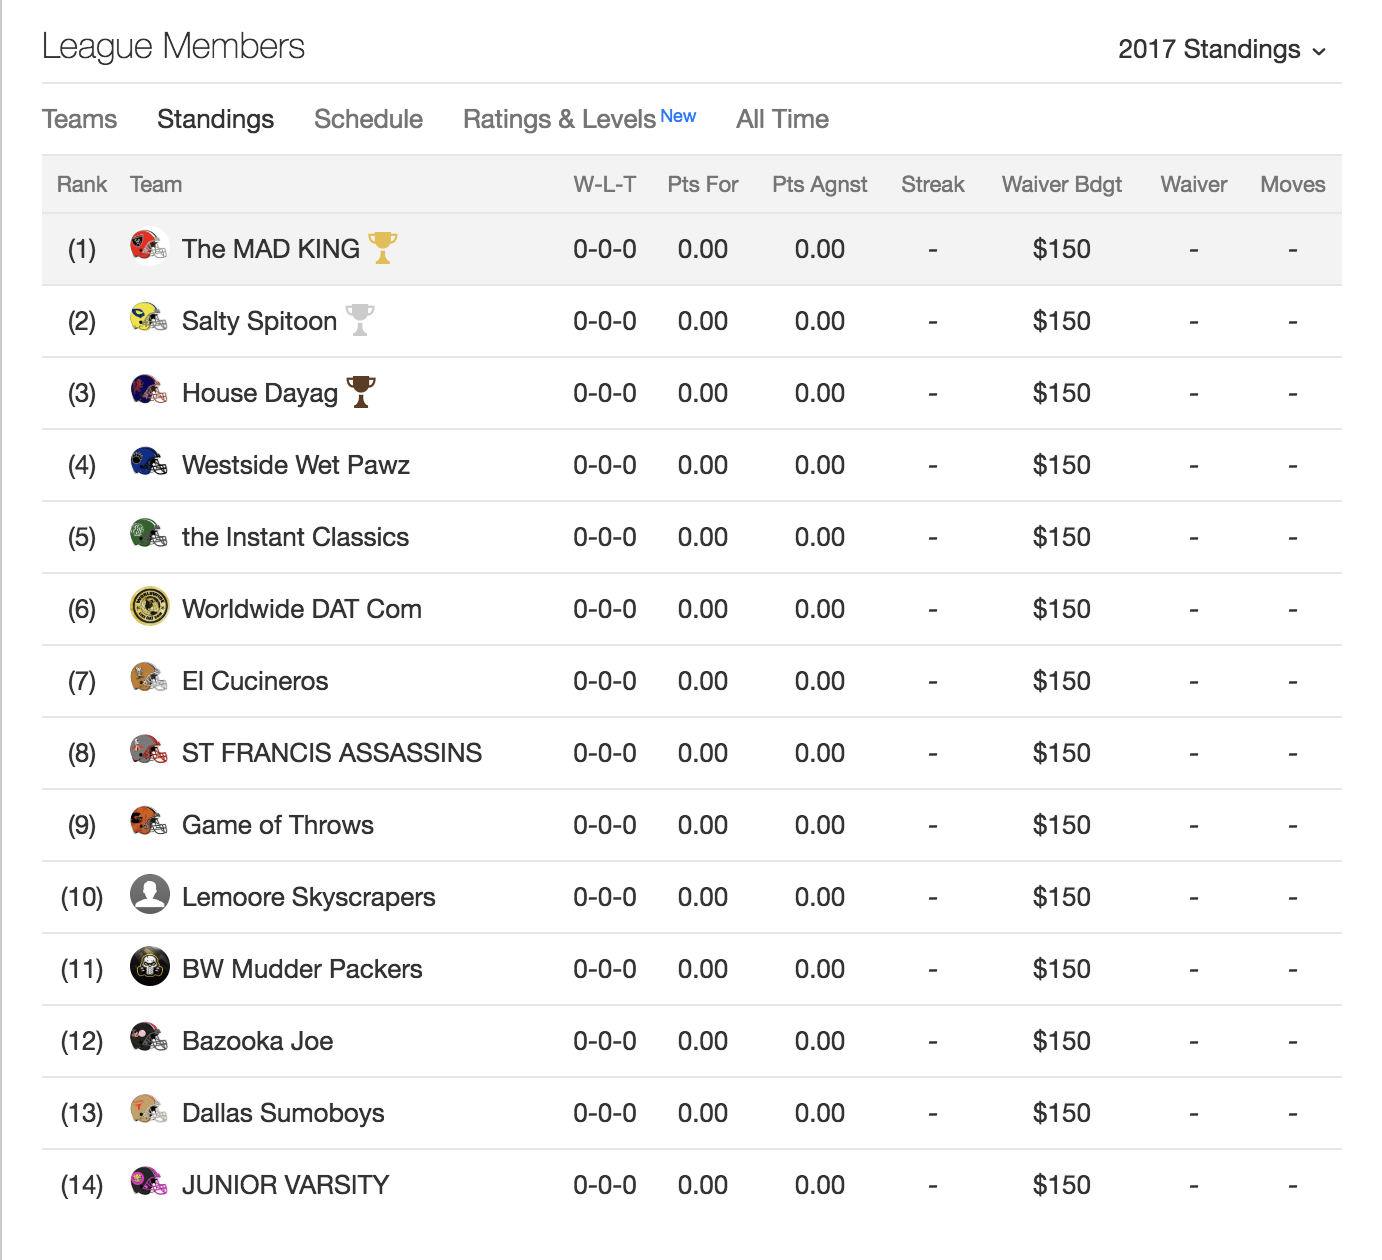 Can I import specific data from my Yahoo Fantasy Football